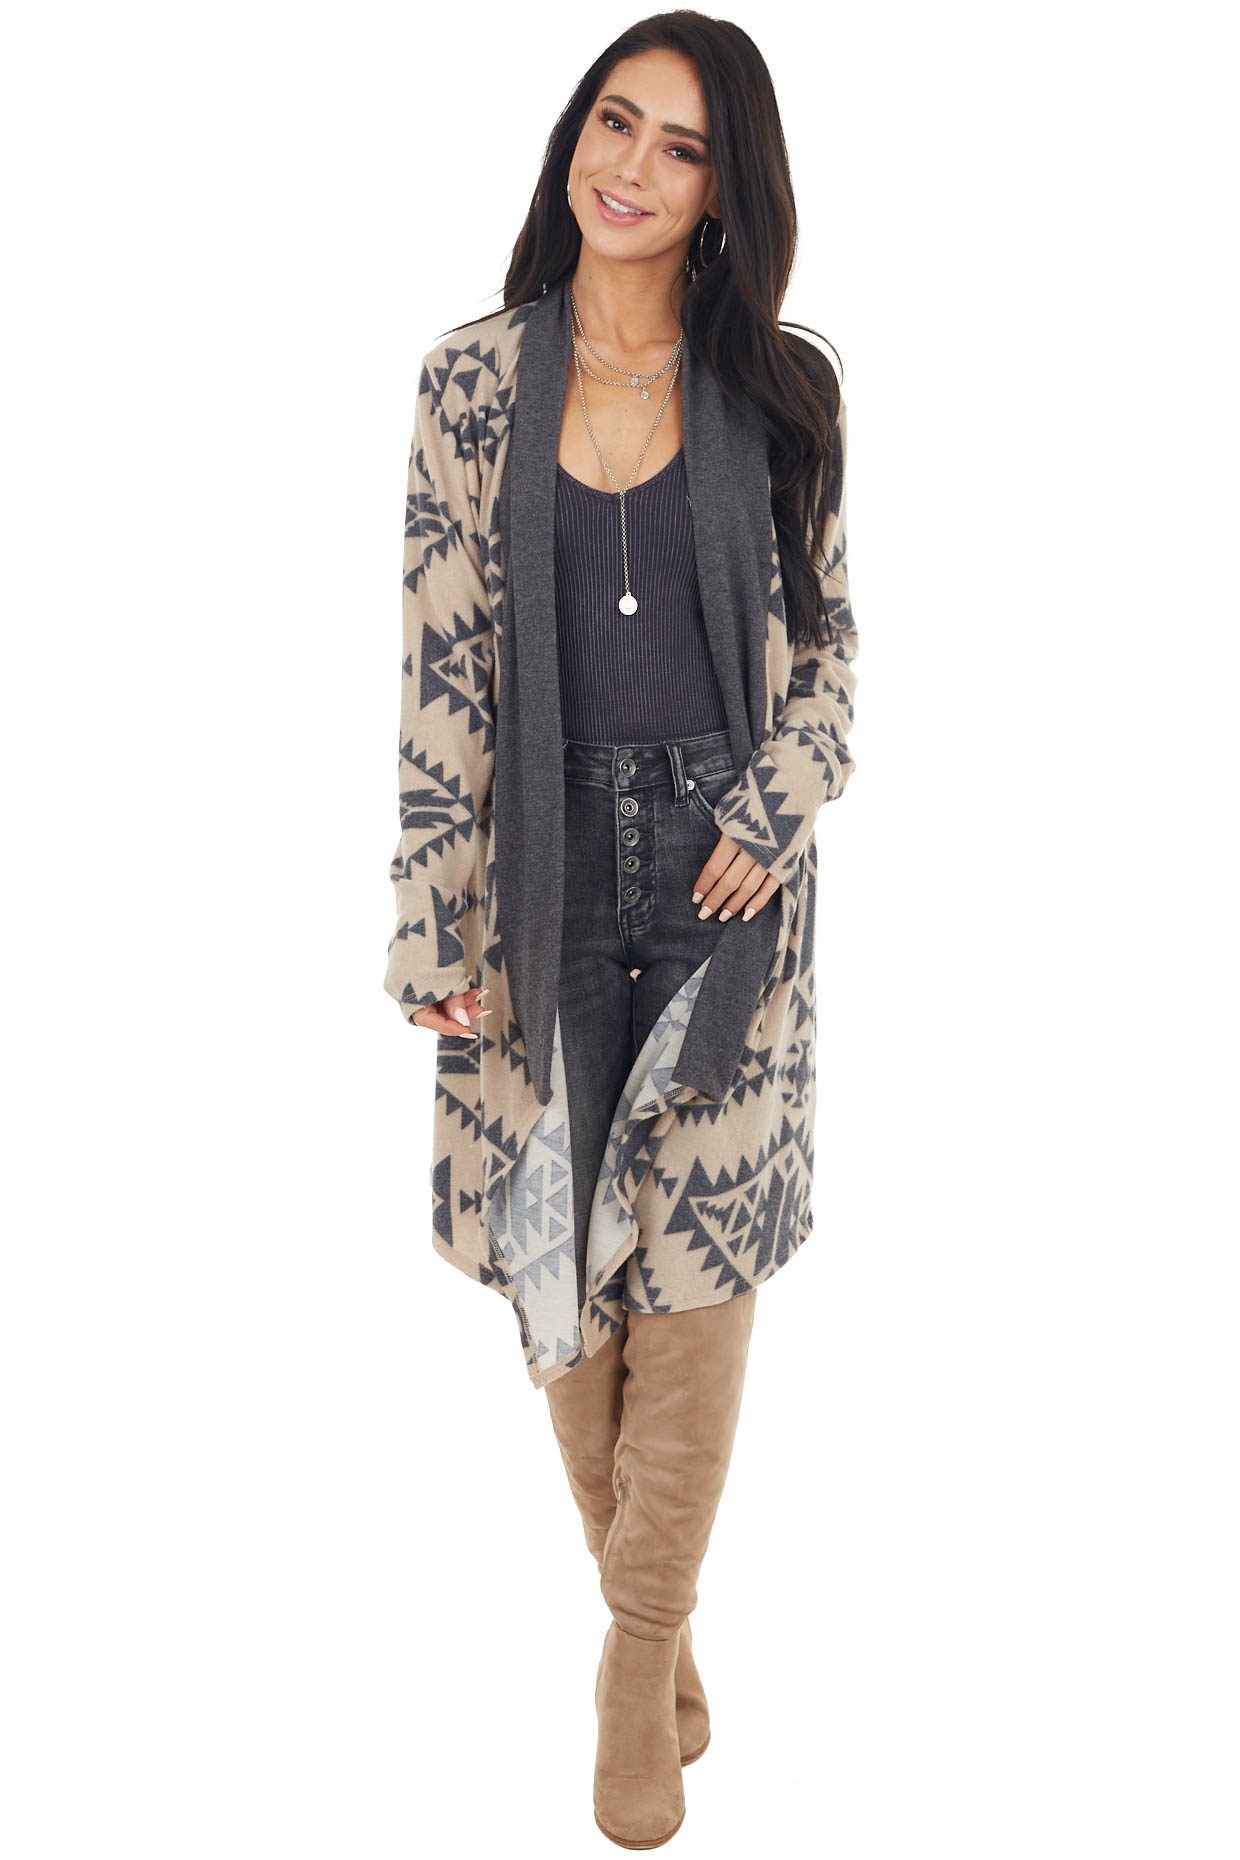 Charcoal Aztec Print Brushed Knit Open Front Cardigan